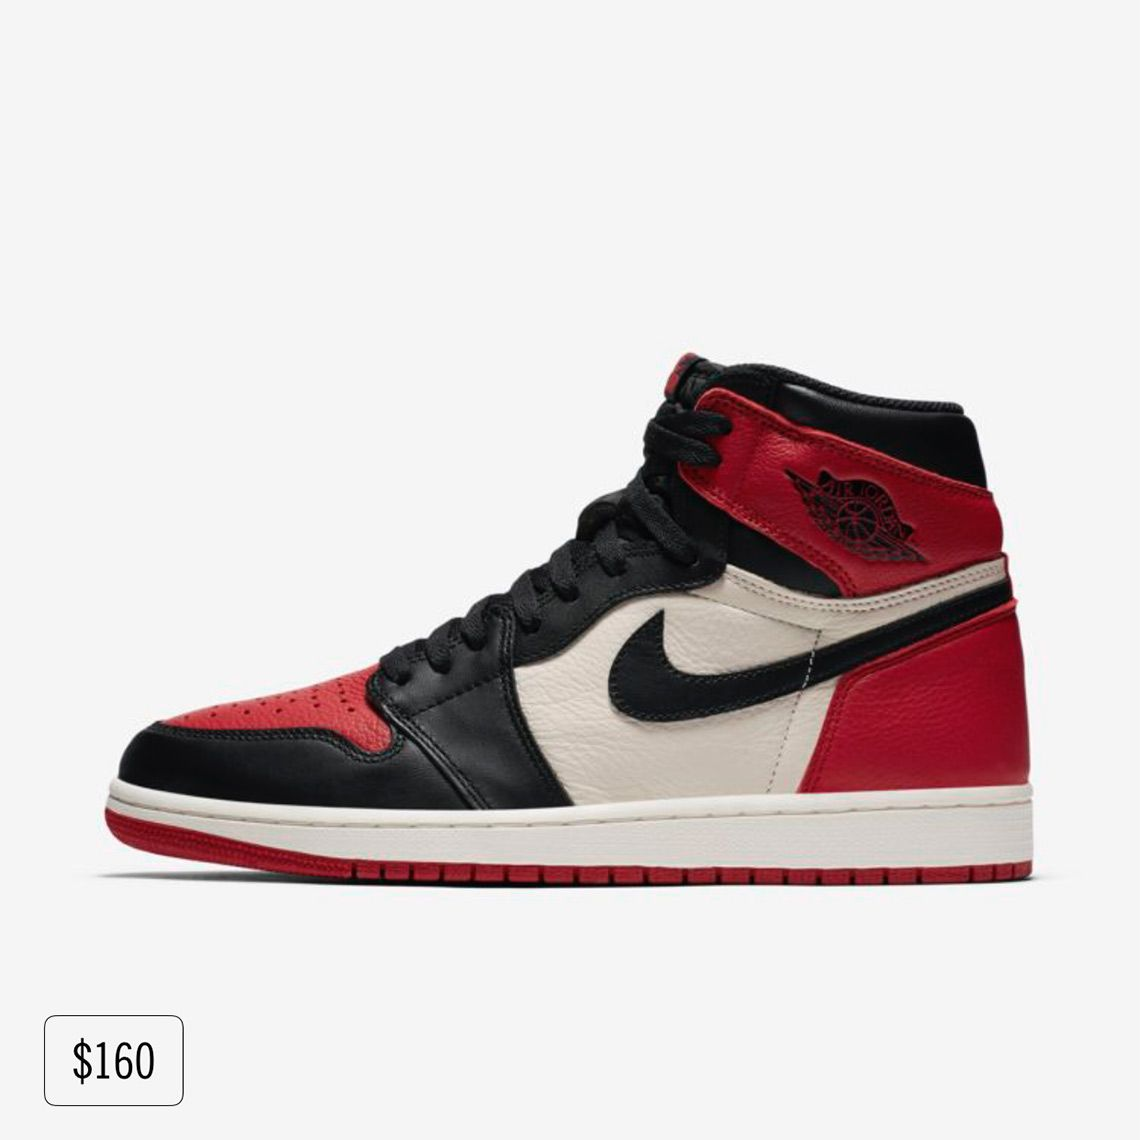 new concept c985d 4cb14 Jordan Reserve On SNKRS Restocks Bred Toe 1 Satin Shattered Backboard And  Much More